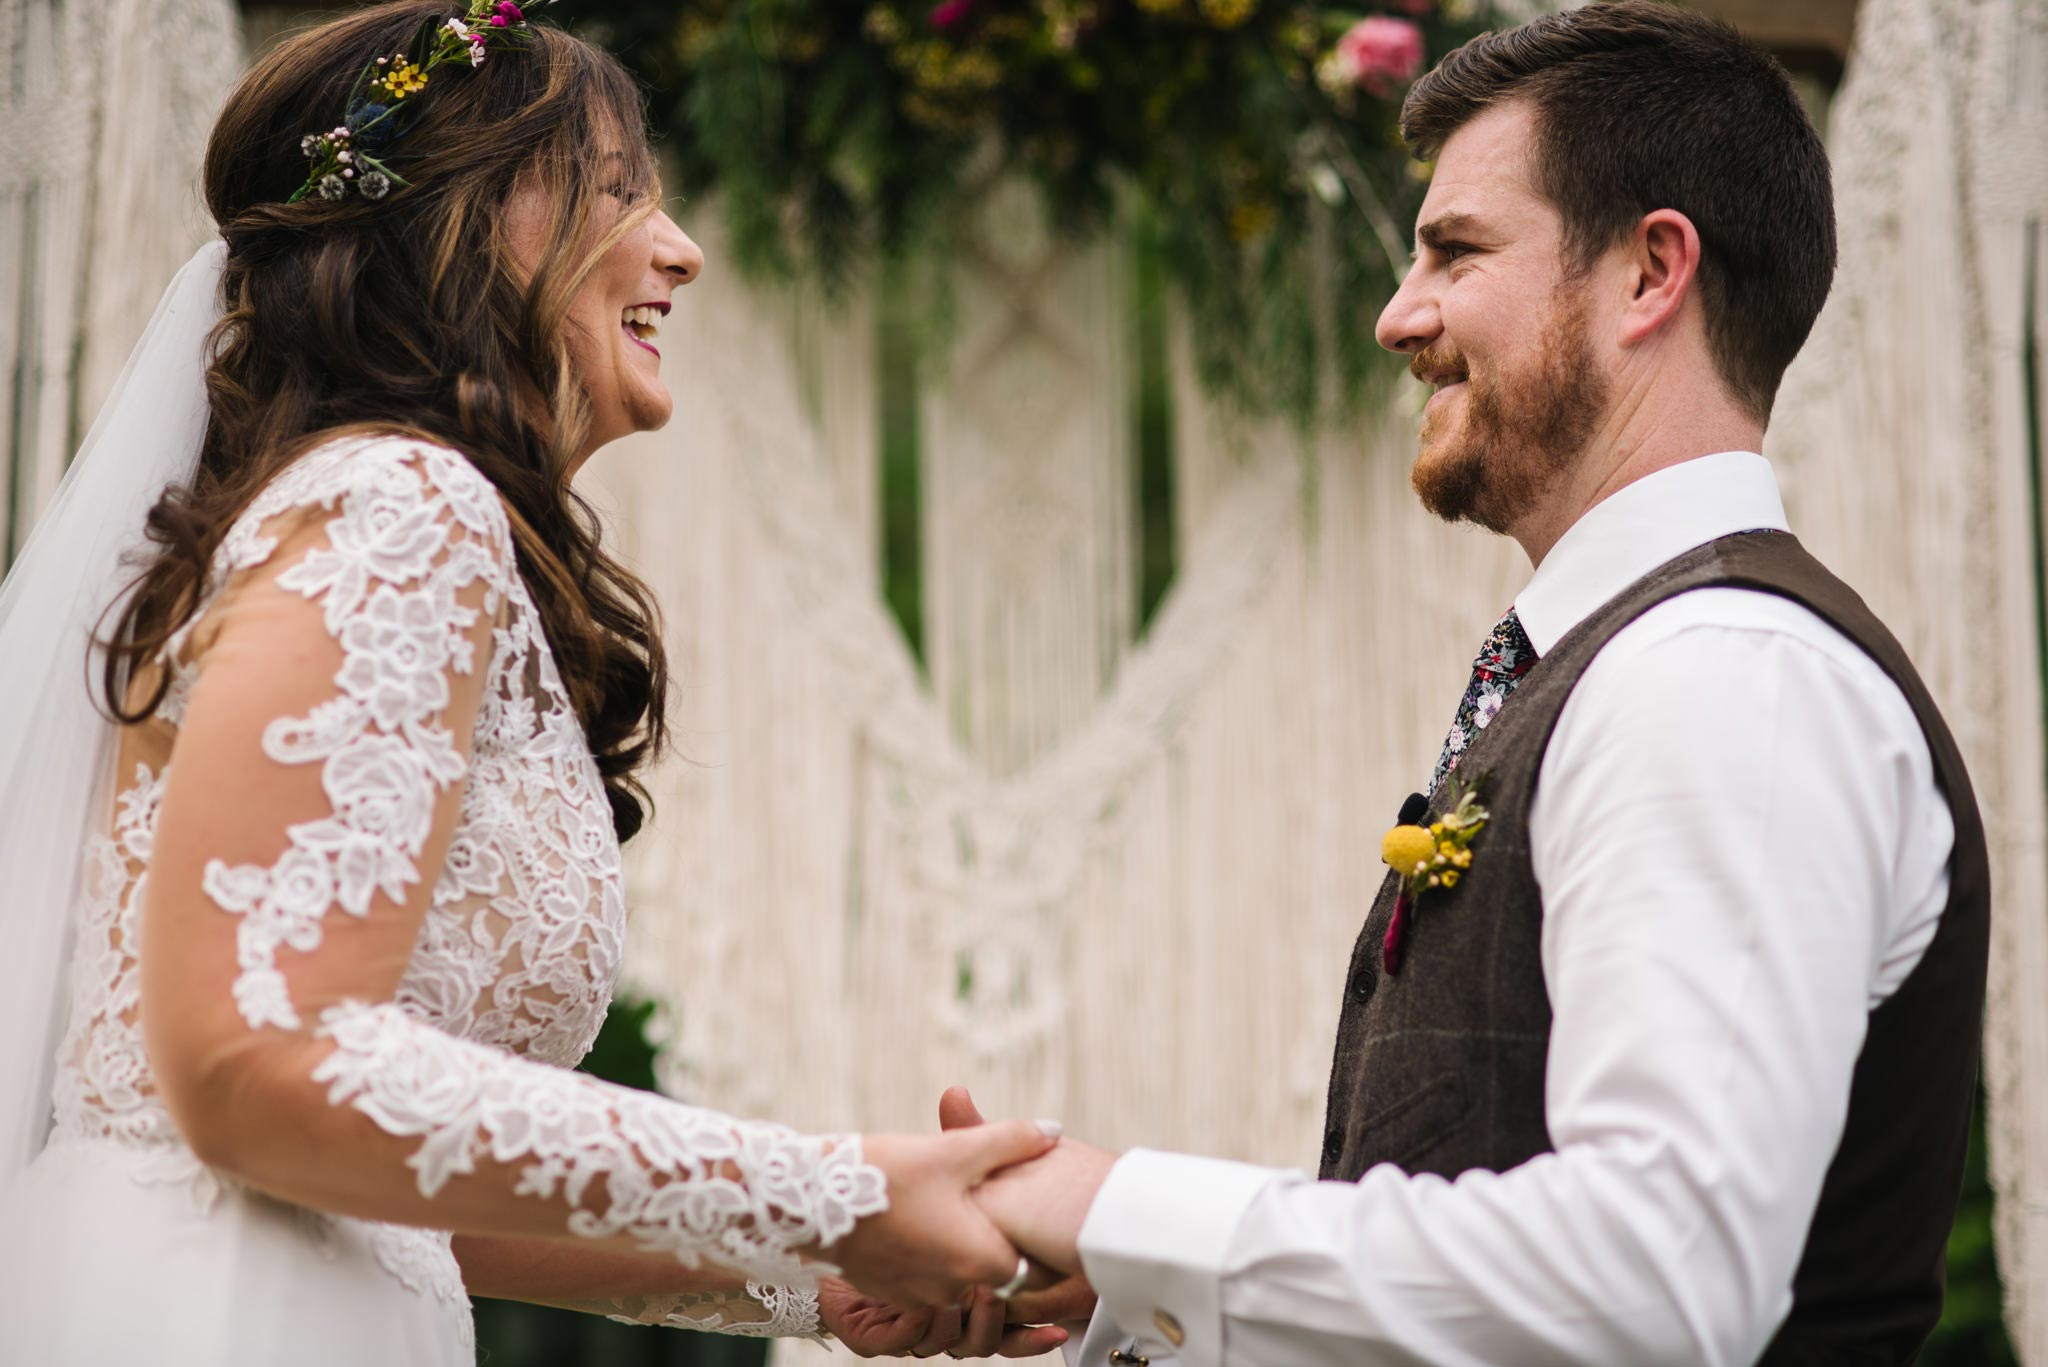 Bride and groom smile during ceremony, holding hands